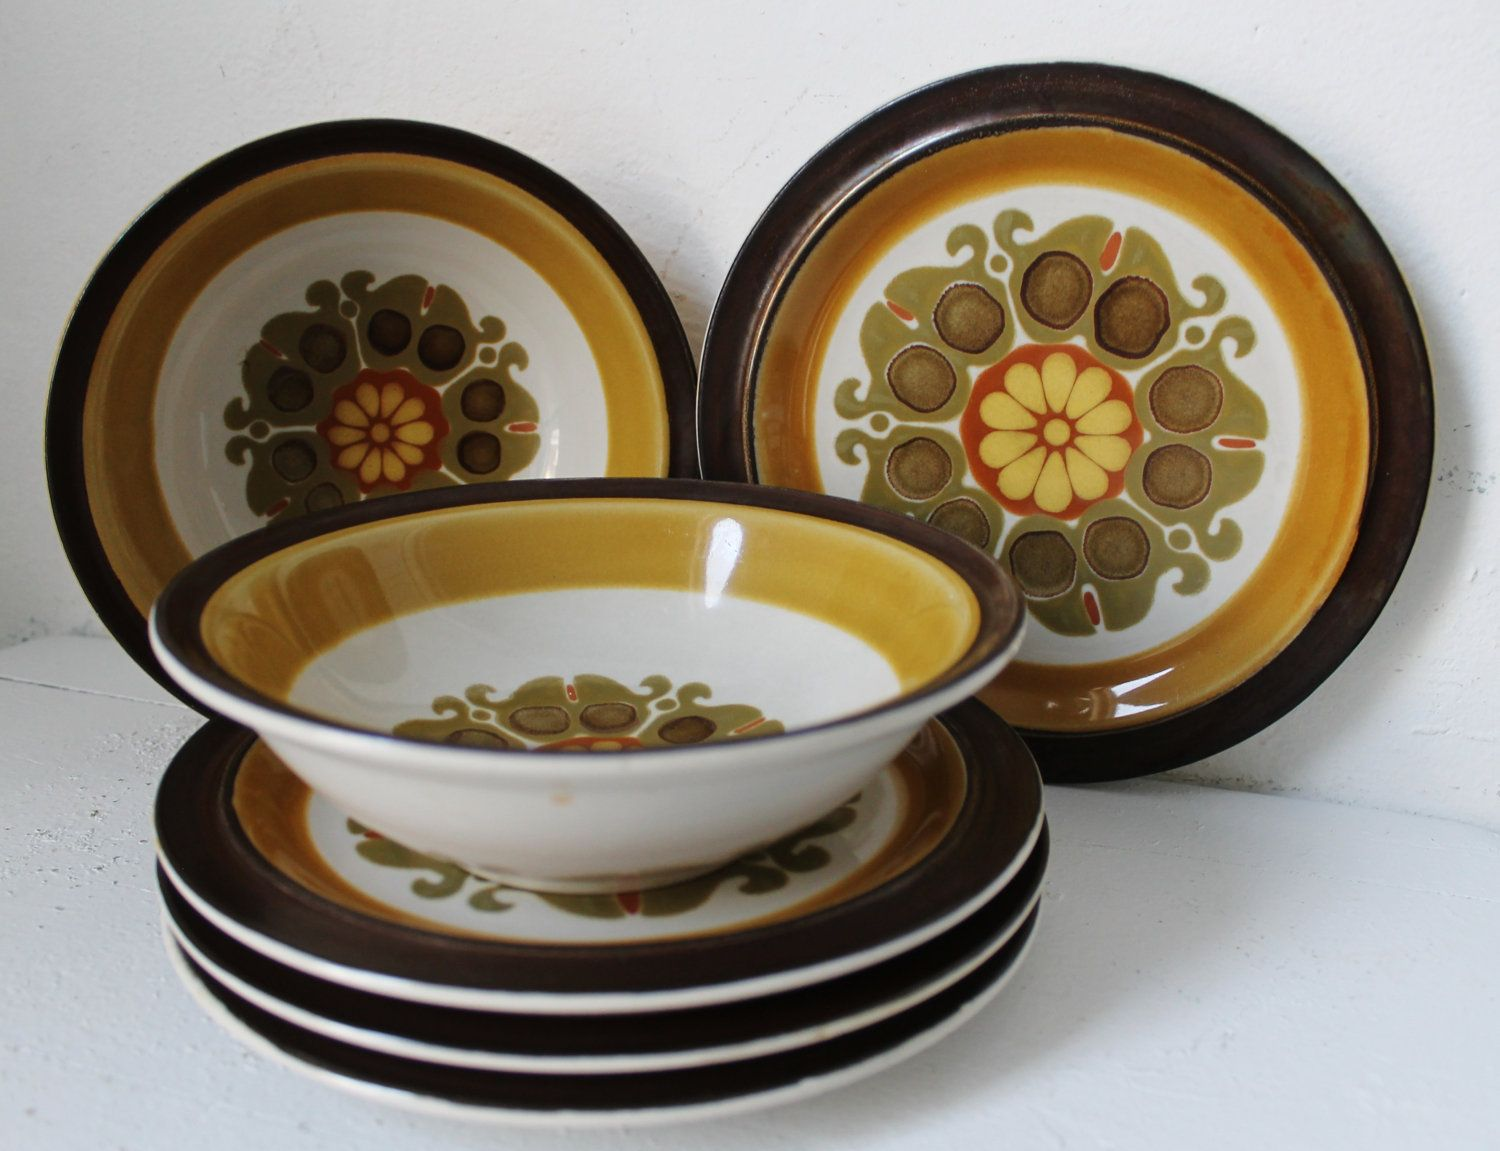 Vintage Casual Ceram Stoneware Dish Set. Electra Echo 1970s. 4 Salad Plates  And 2 Bowls.